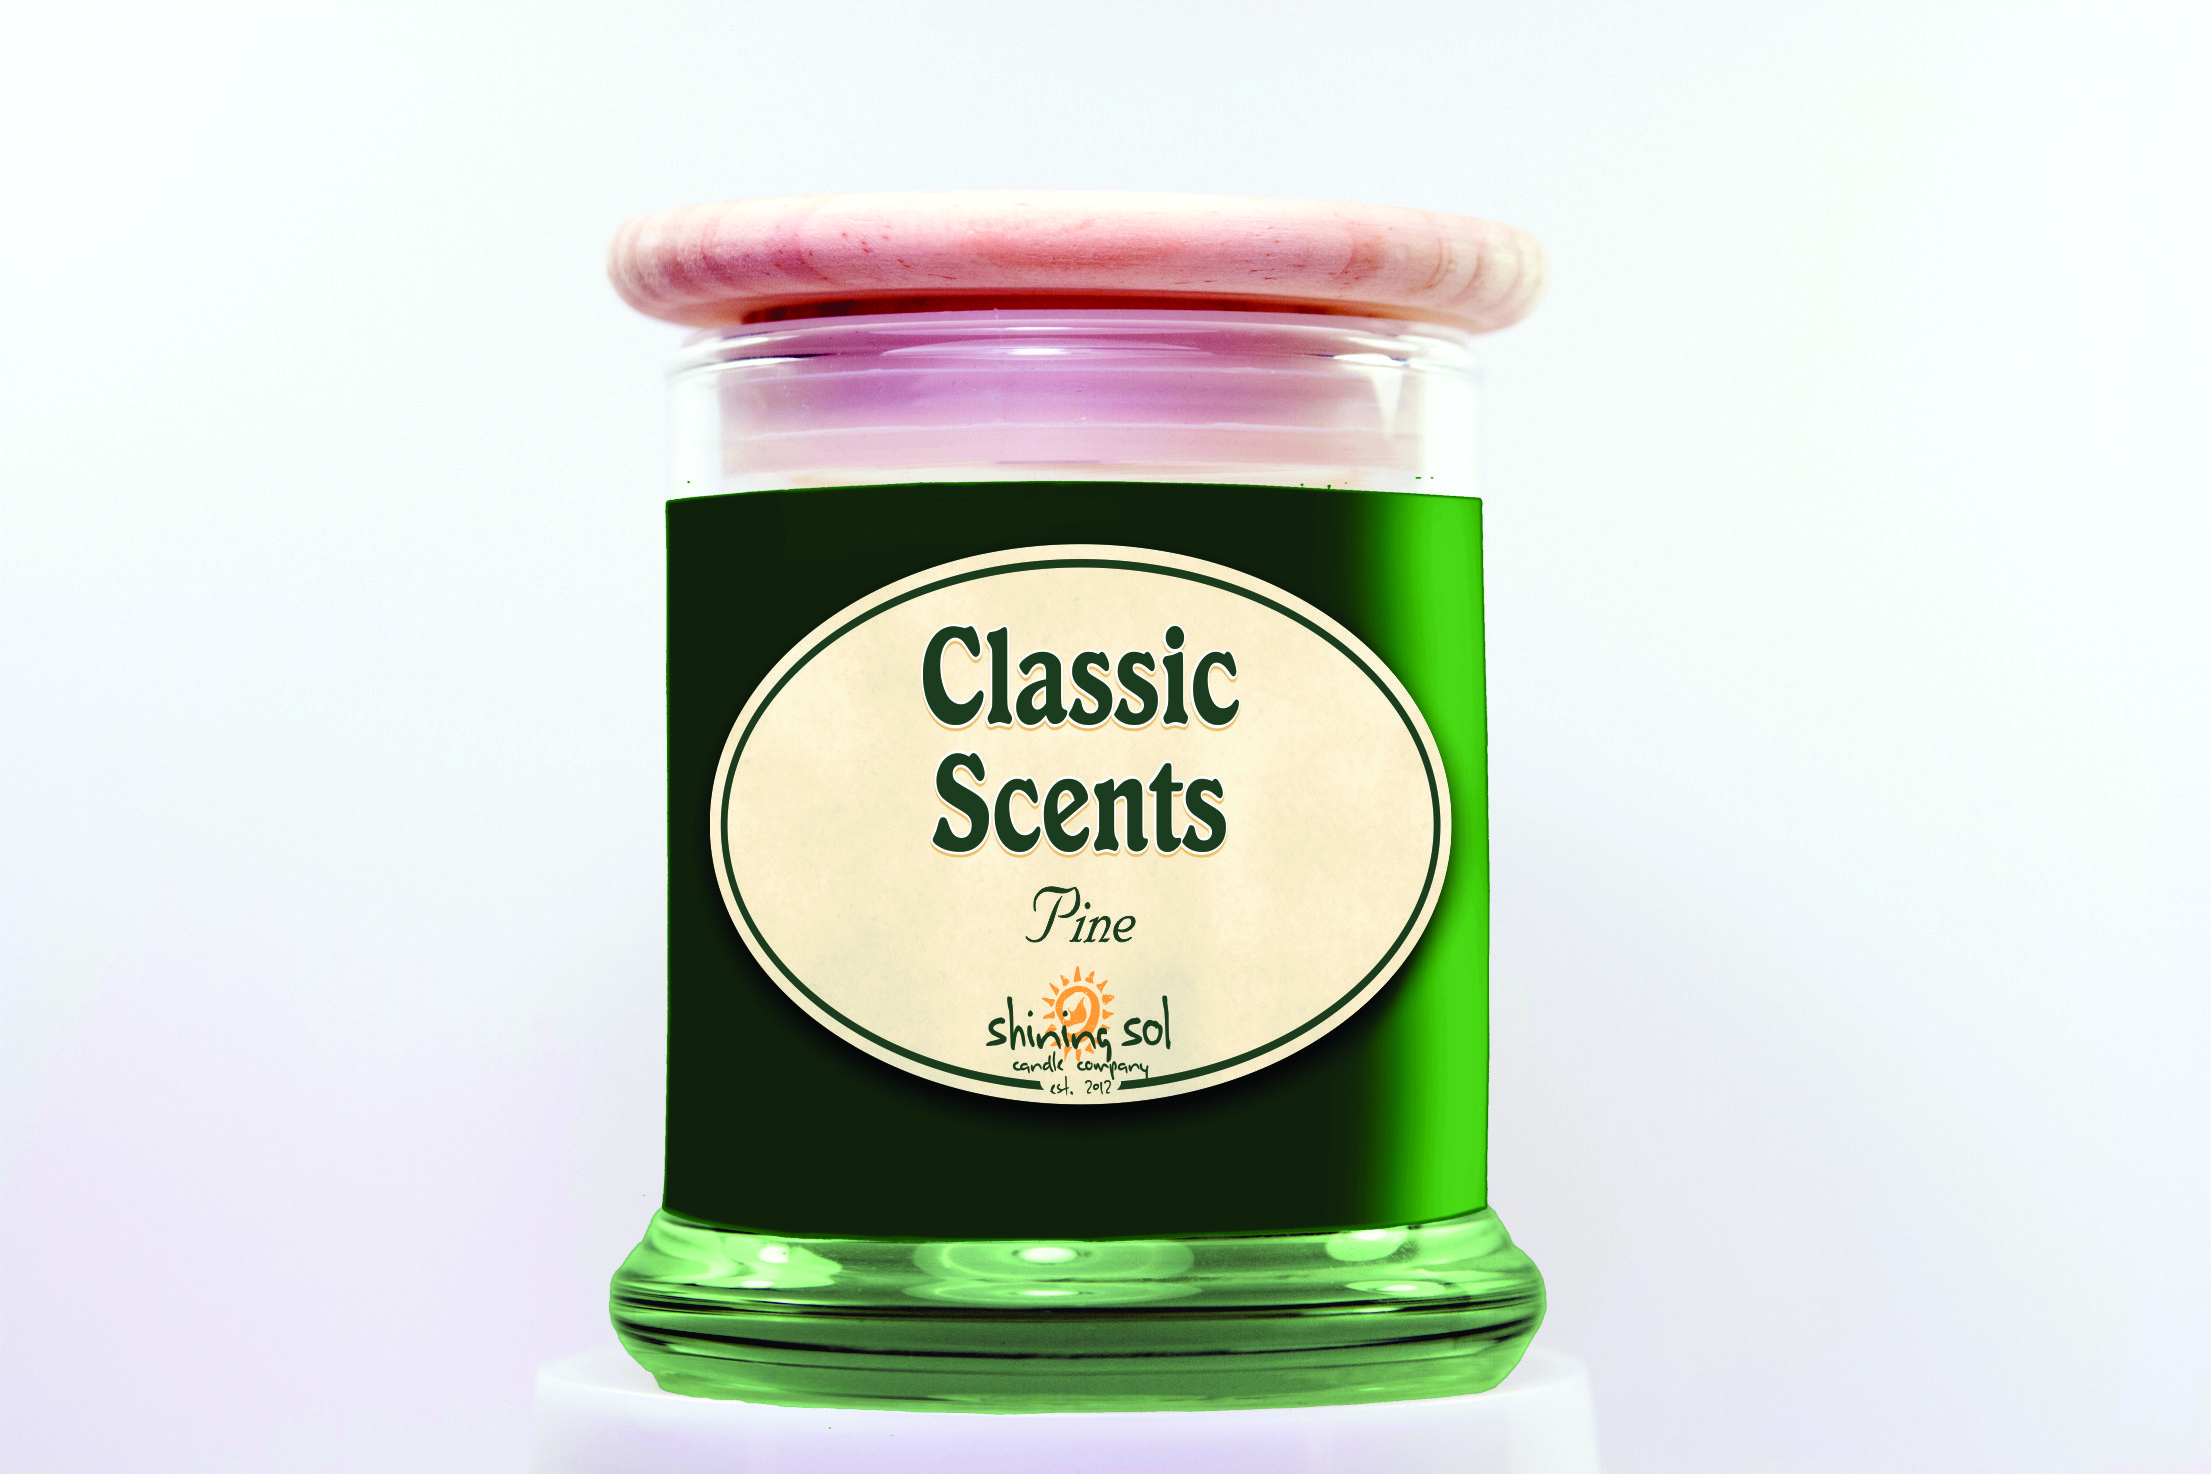 Pine Sol Candle